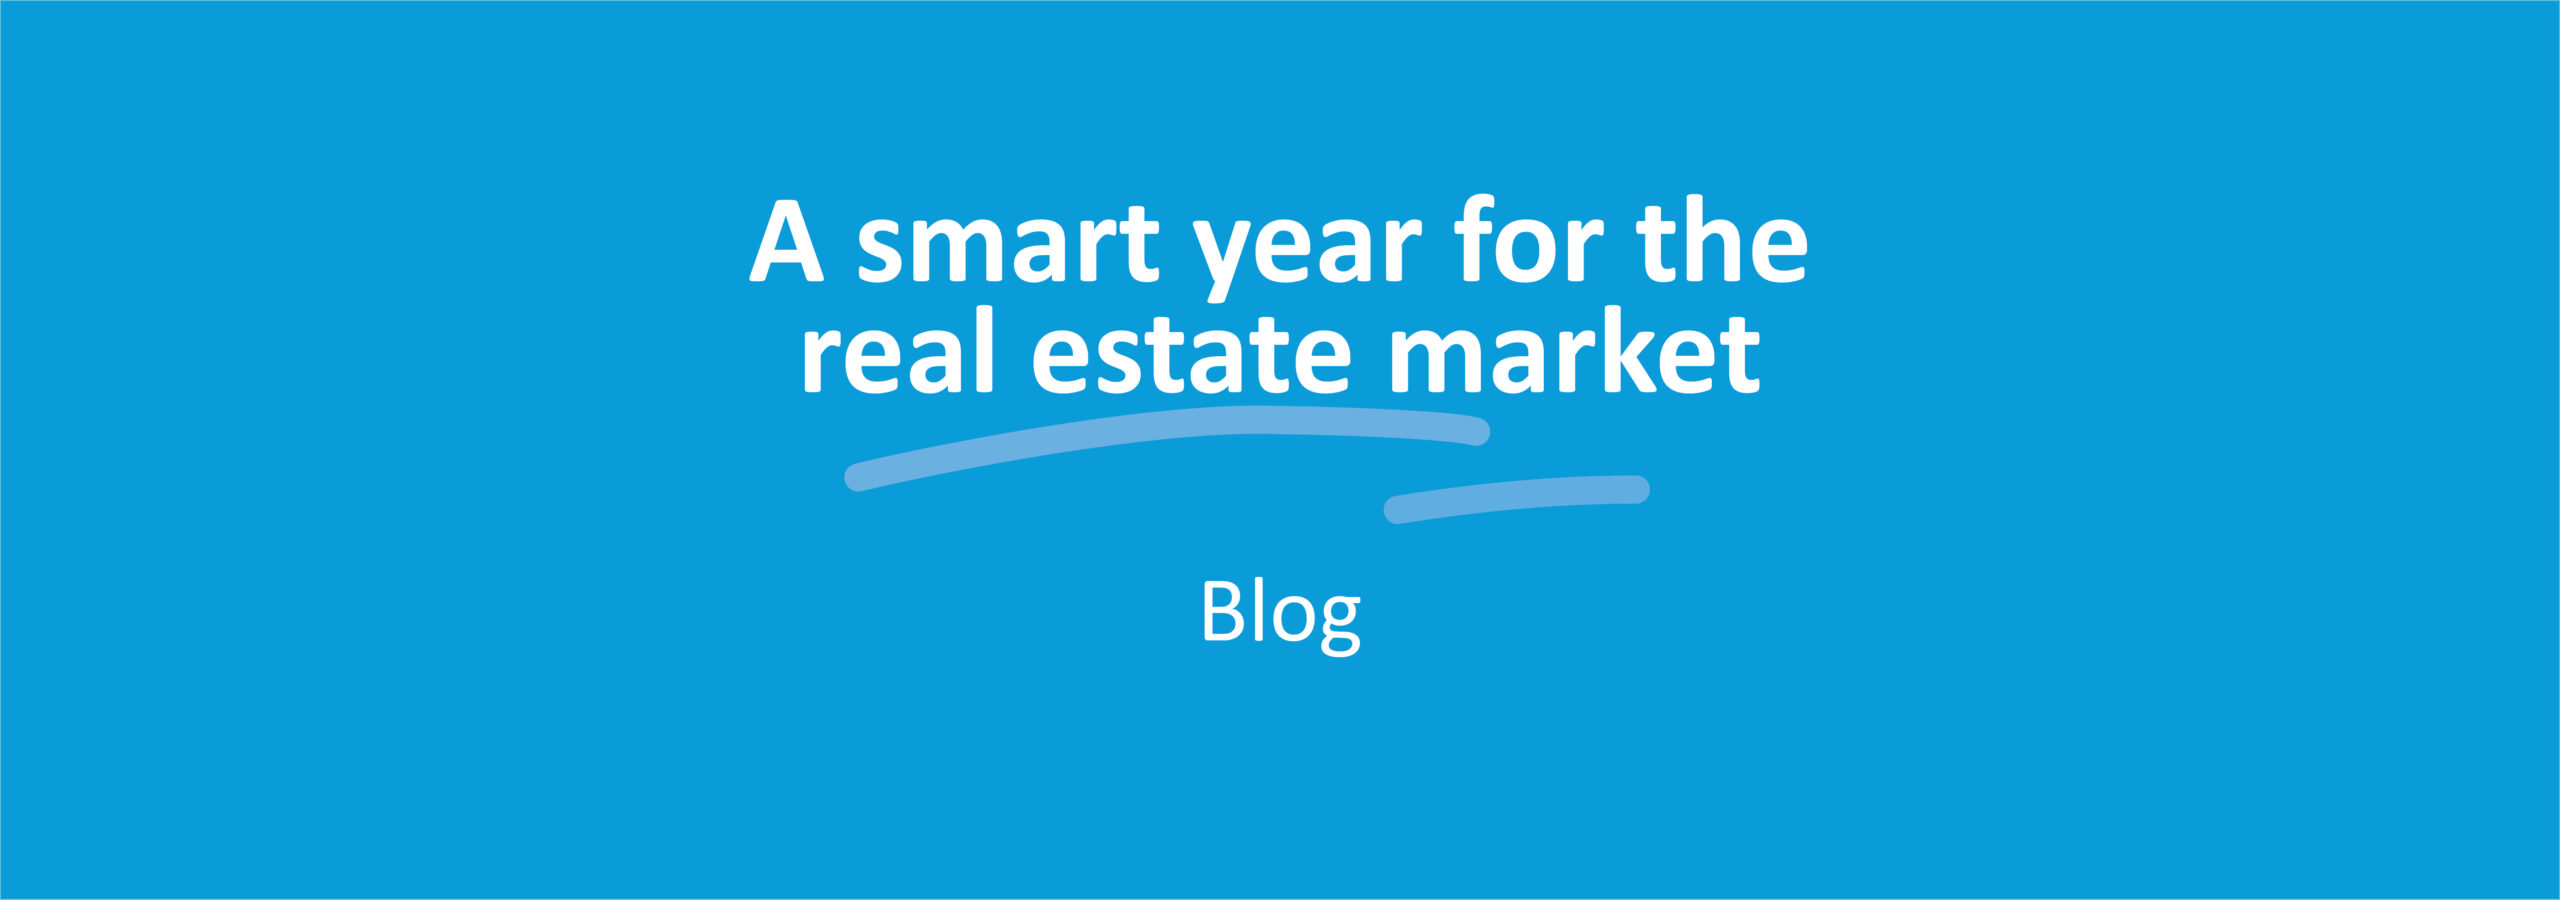 A smart year for the real estate market